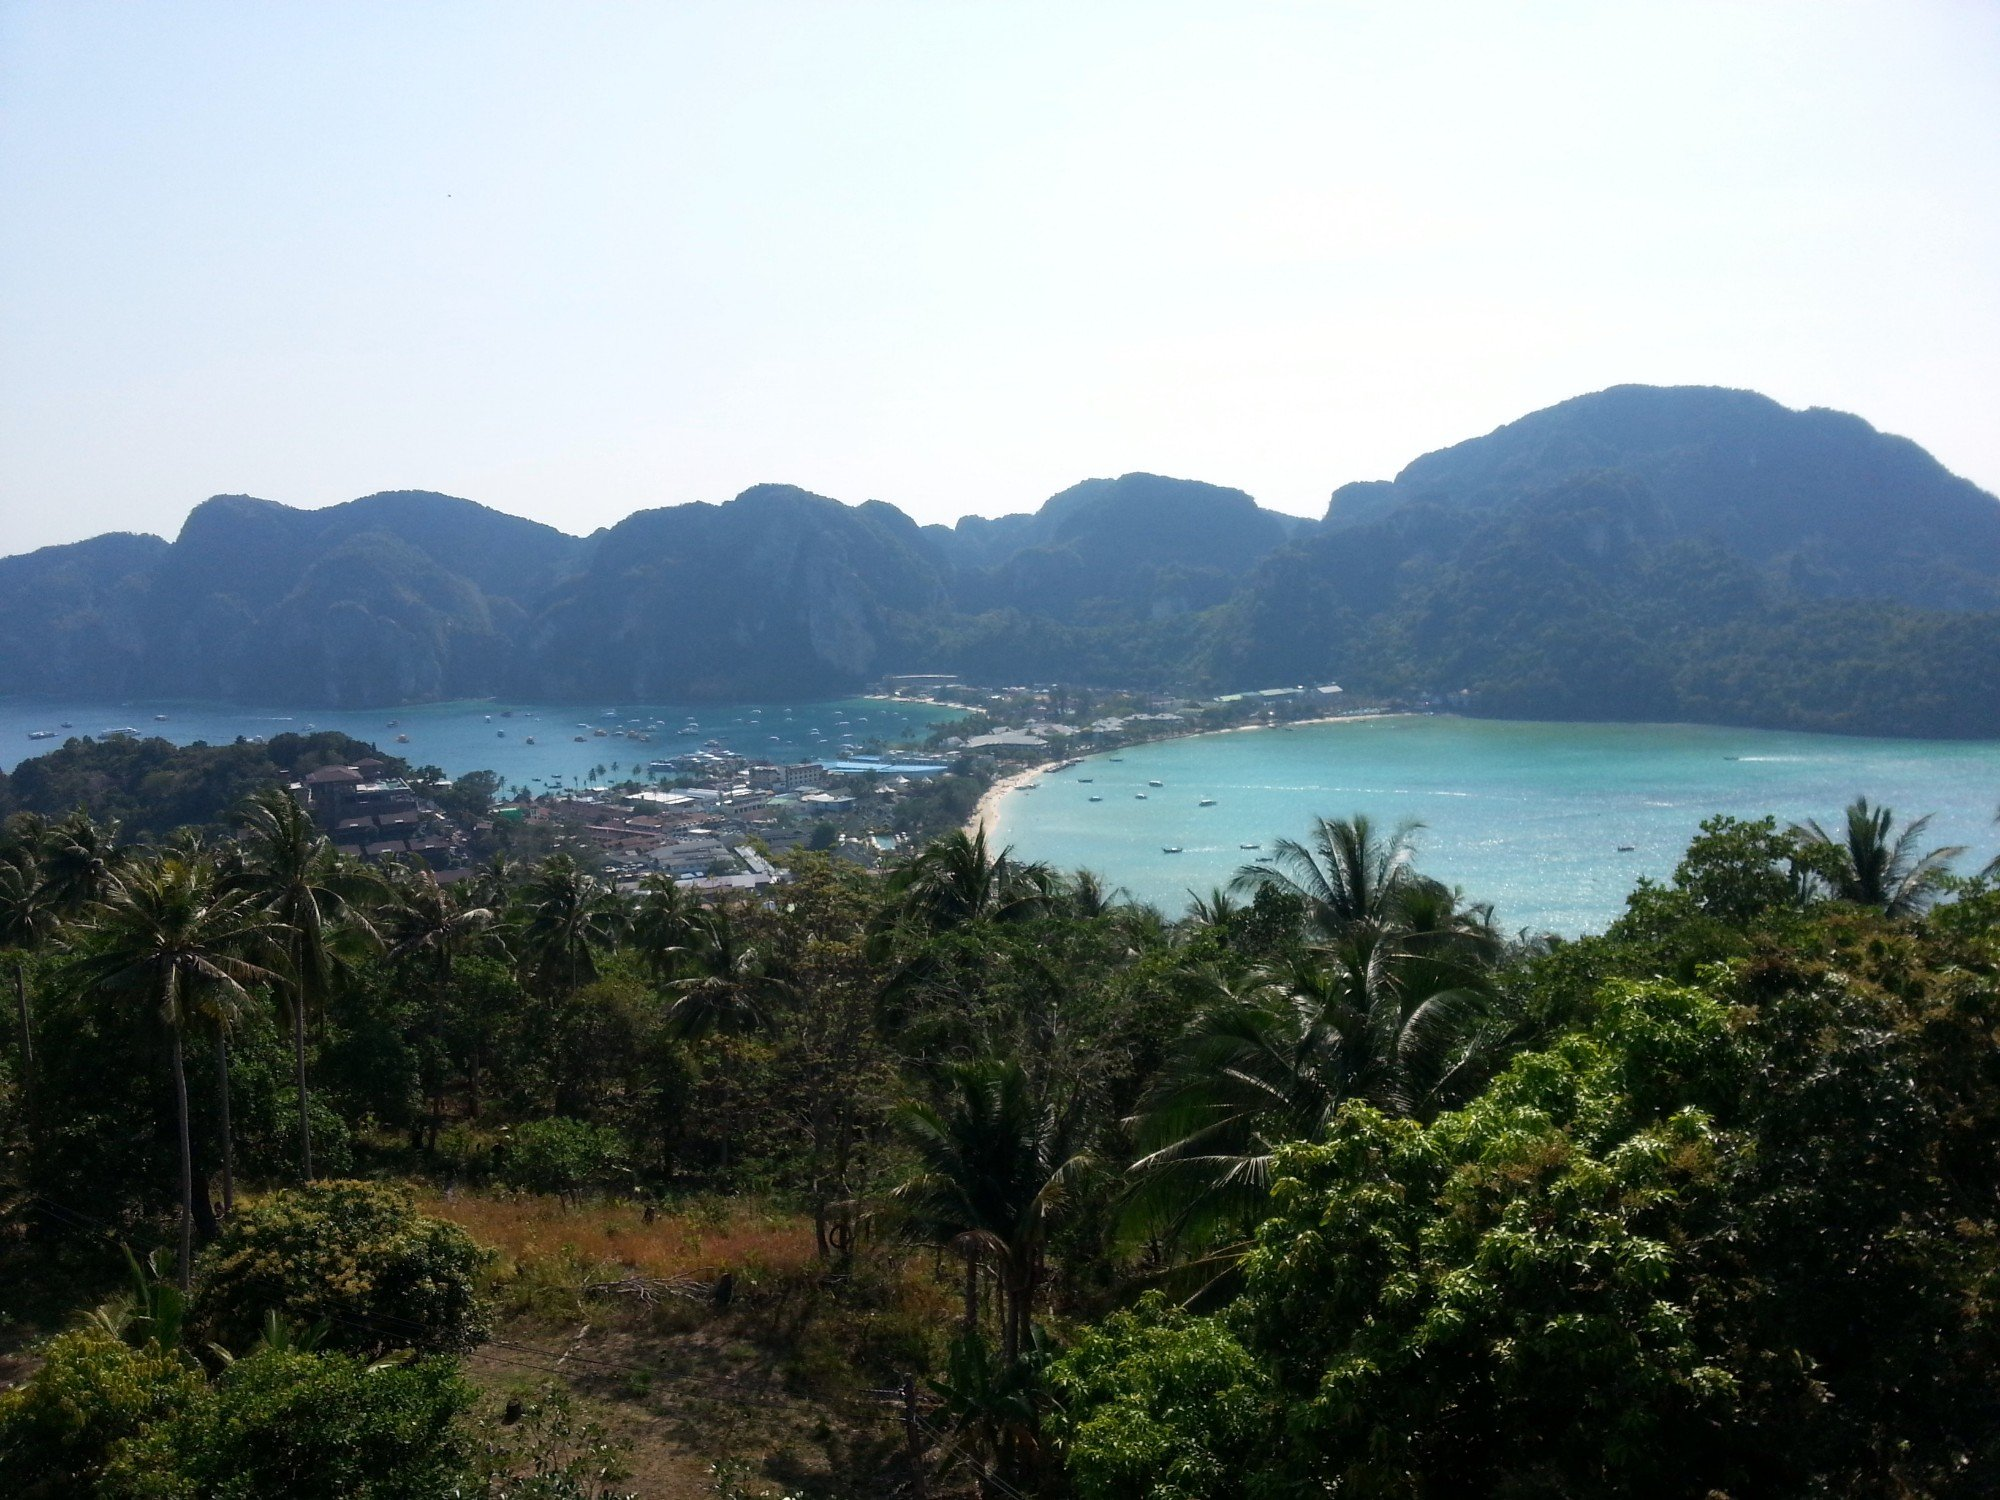 Viewpoint in Koh Phi Phi